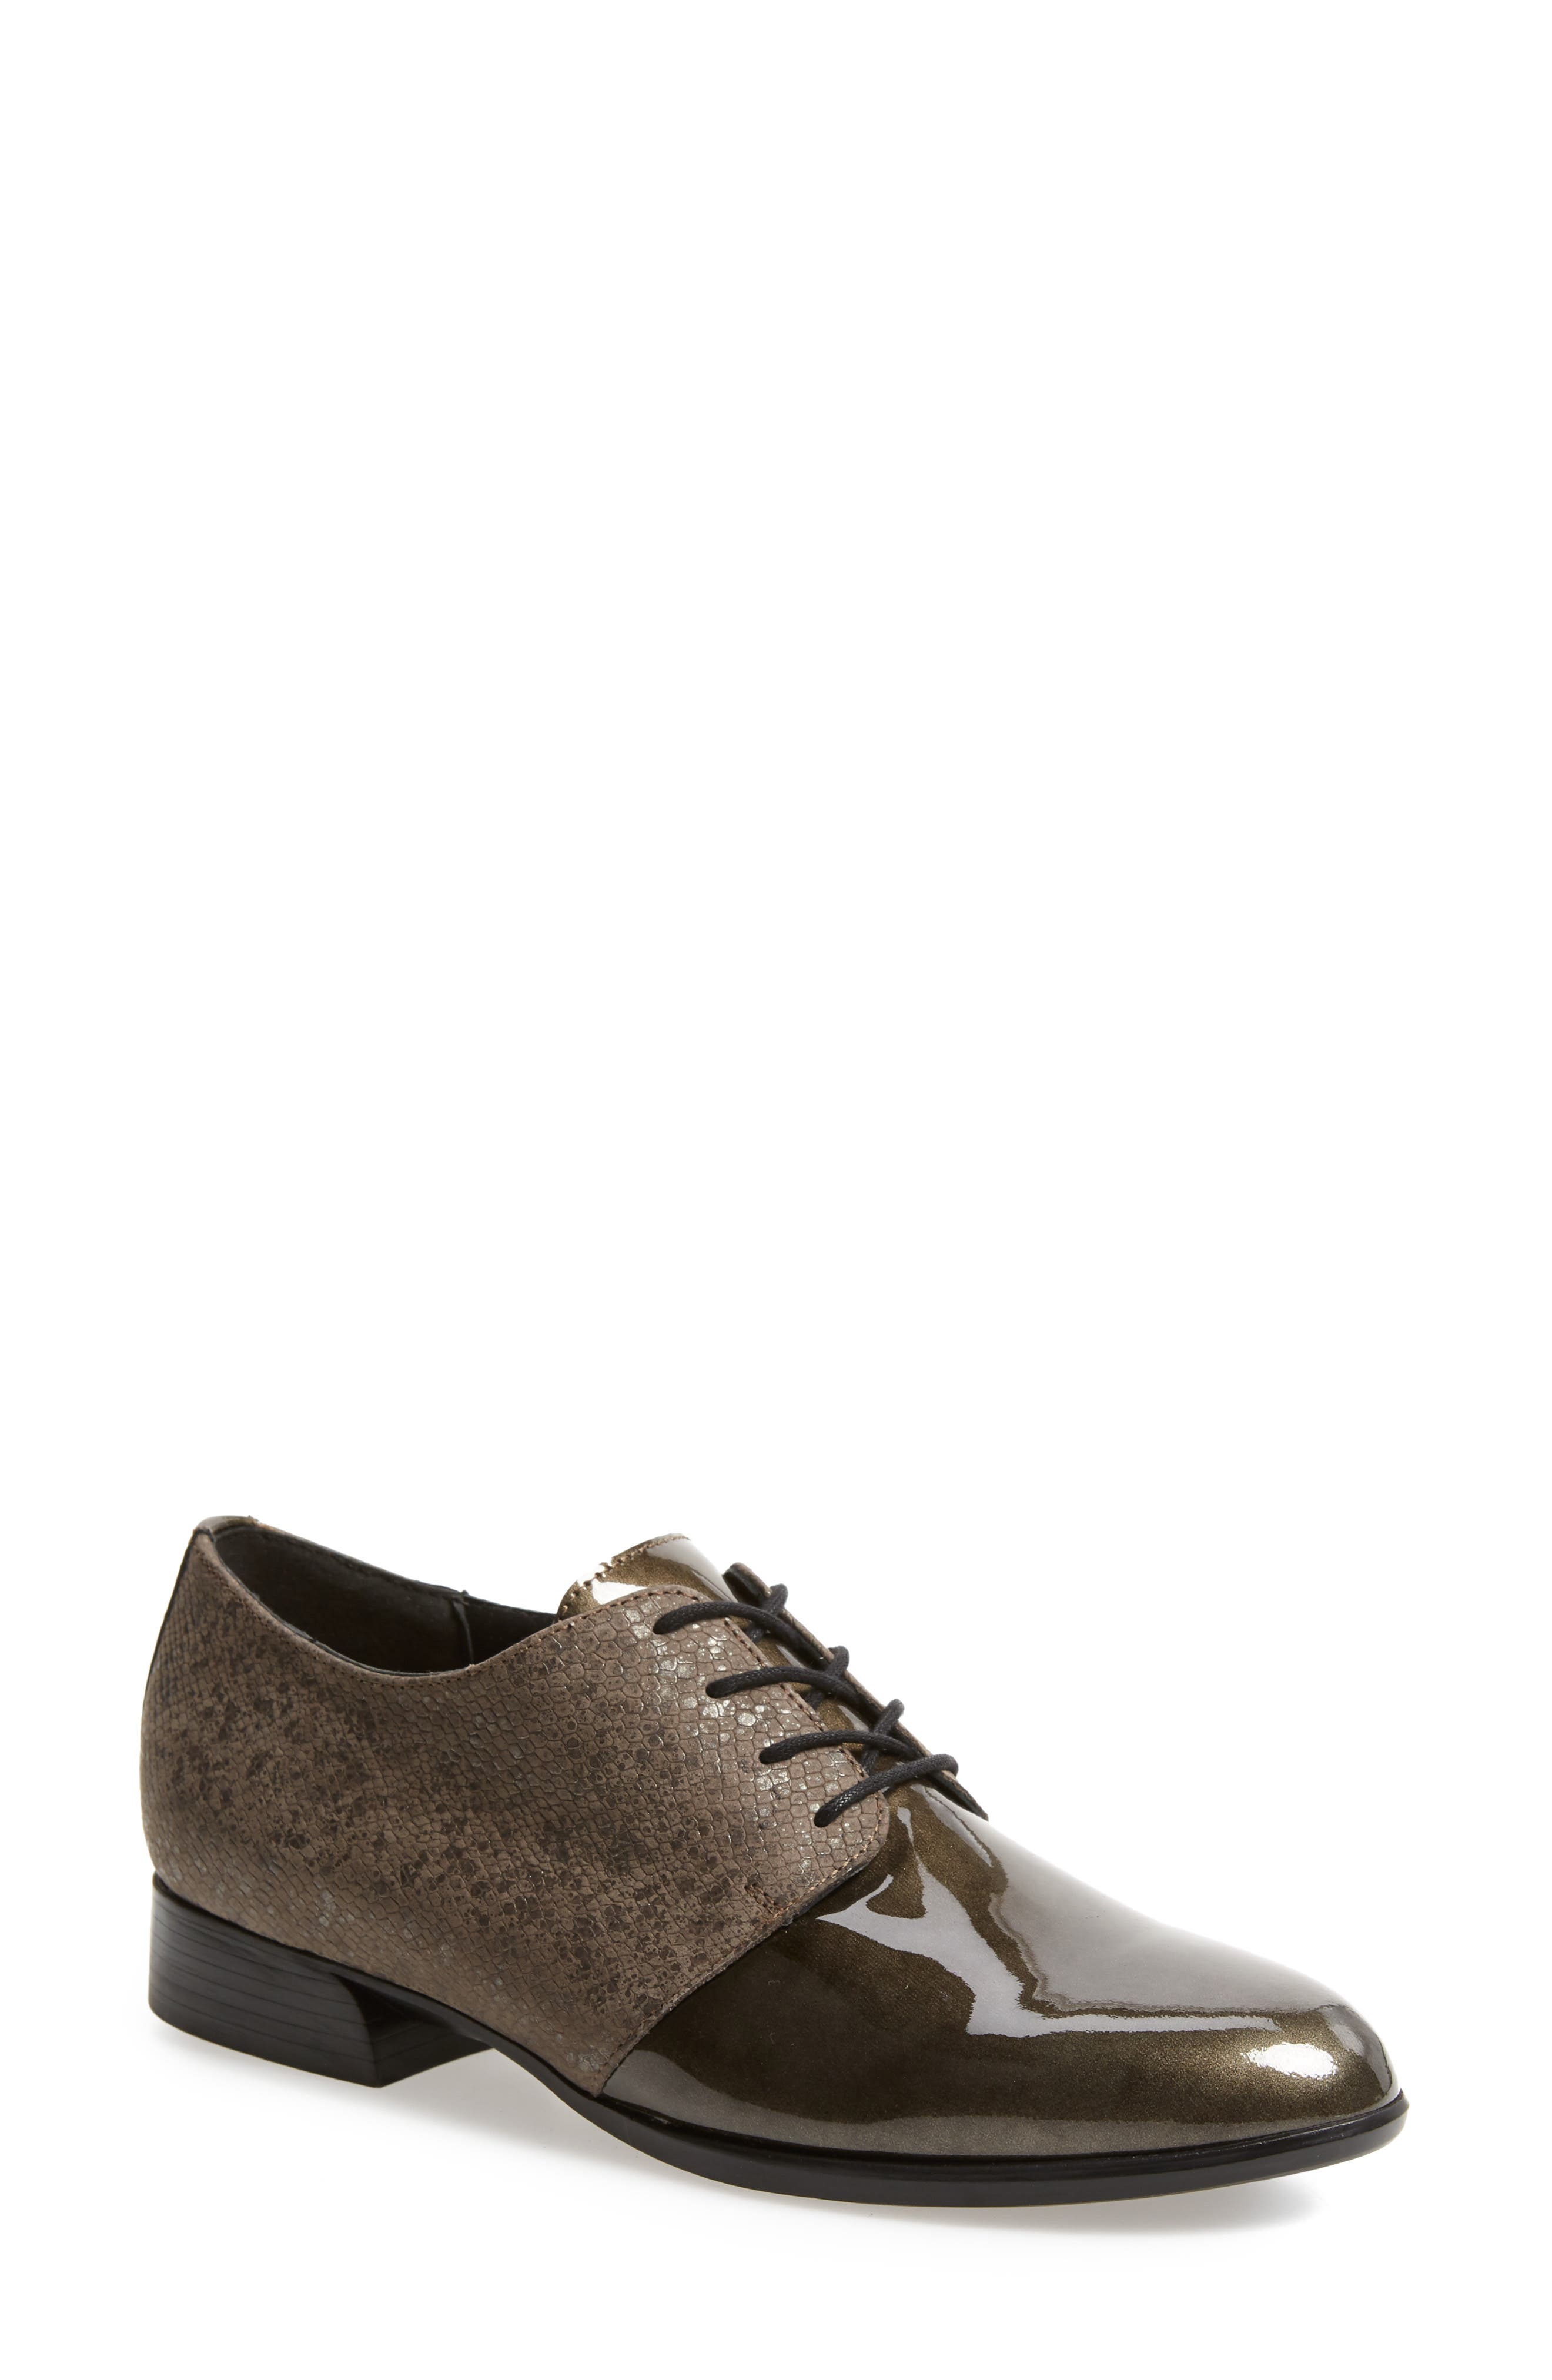 MUNRO, Markella Derby, Main thumbnail 1, color, GREY PATENT LEATHER